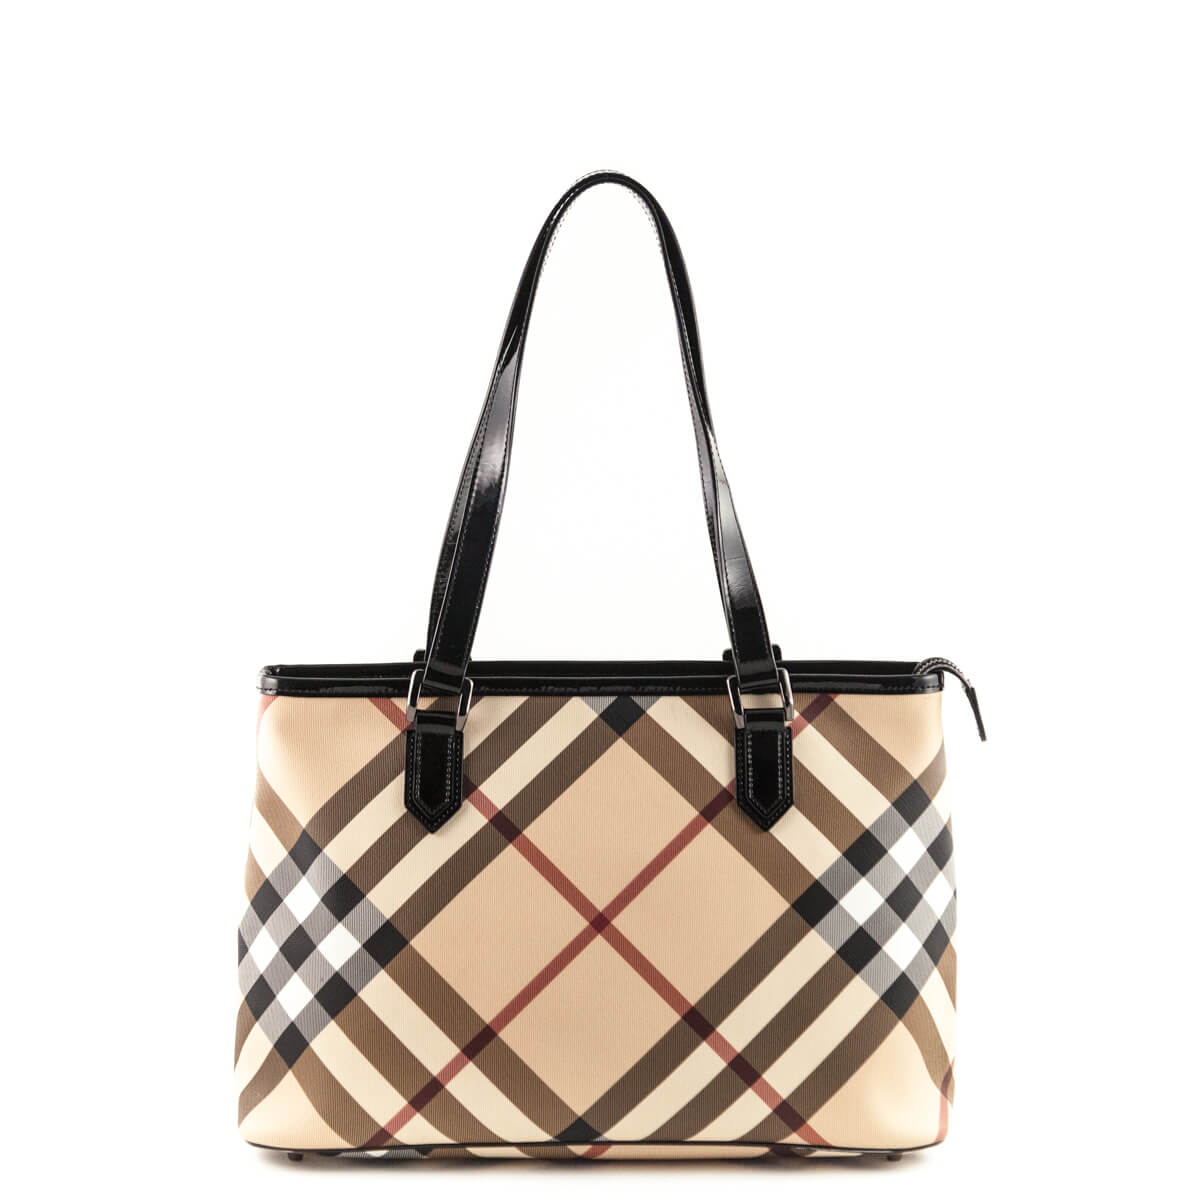 466be8a1ad09 Burberry Nova Check Tote Bag - LOVE that BAG - Preowned Authentic Designer  Handbags ...